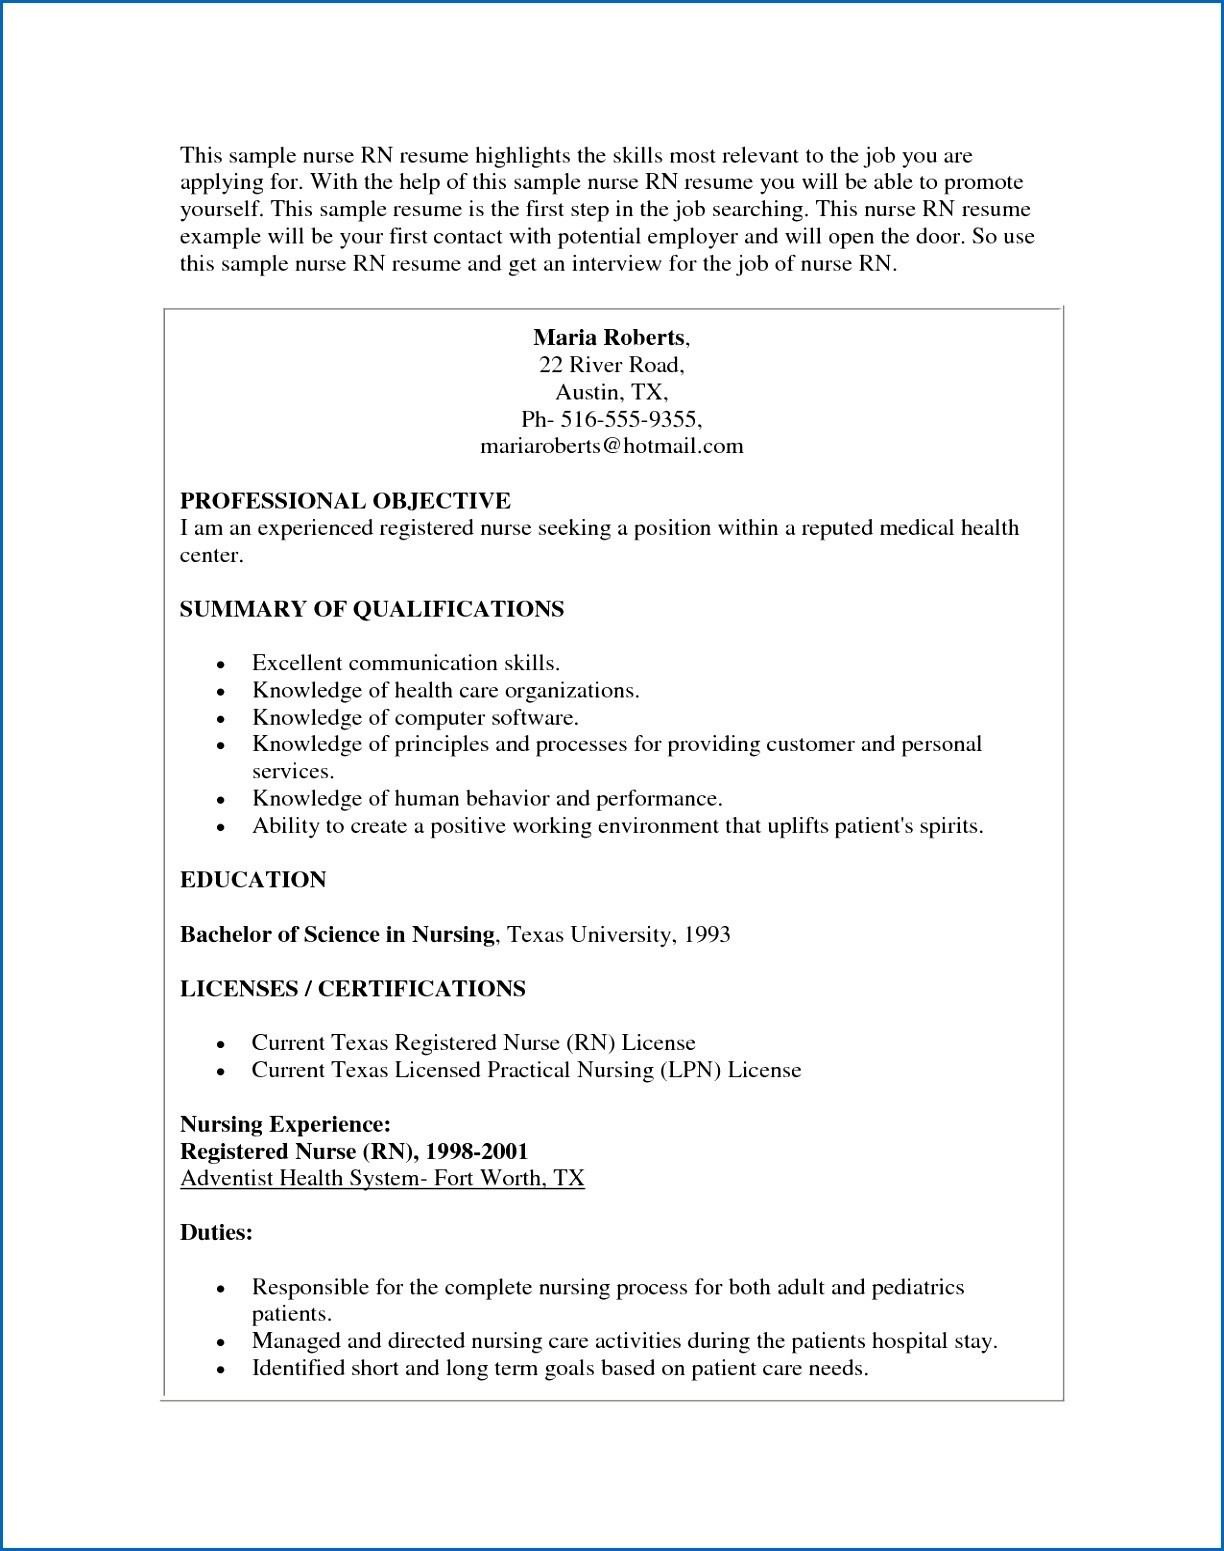 Resume for Nursing Student with No Experience - Nursing Skills Resume Awesome Nursing Resume Lovely Rn Bsn Resume